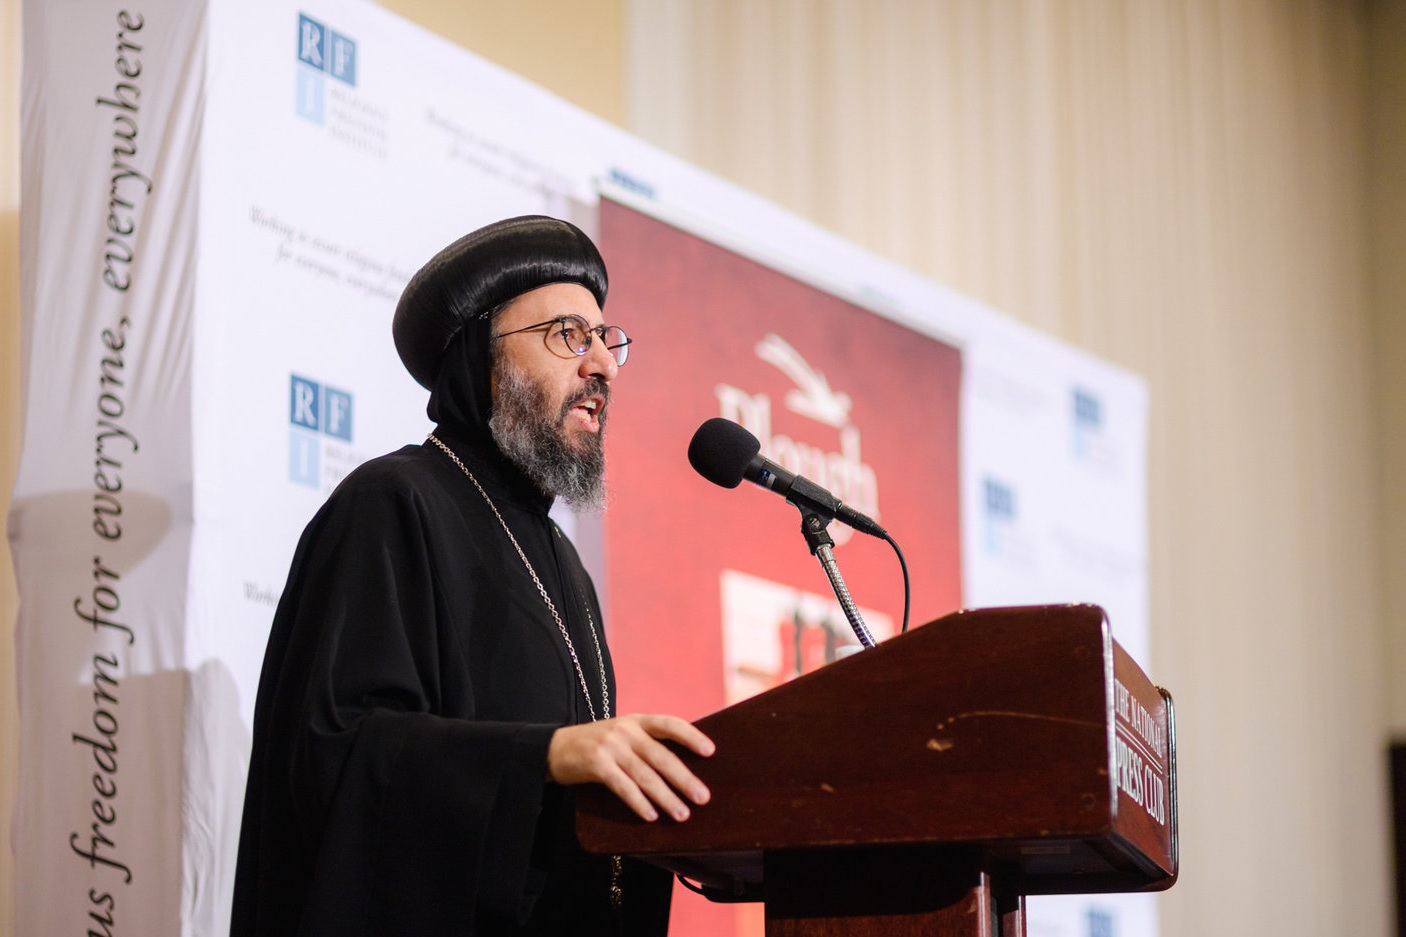 Archbishop Angaelos, Coptic Orthodox Archbishop of London gives keynote remarks on the impact of this event on the Coptic community of Egypt.  Photo: RFI/Nathan Mitchell